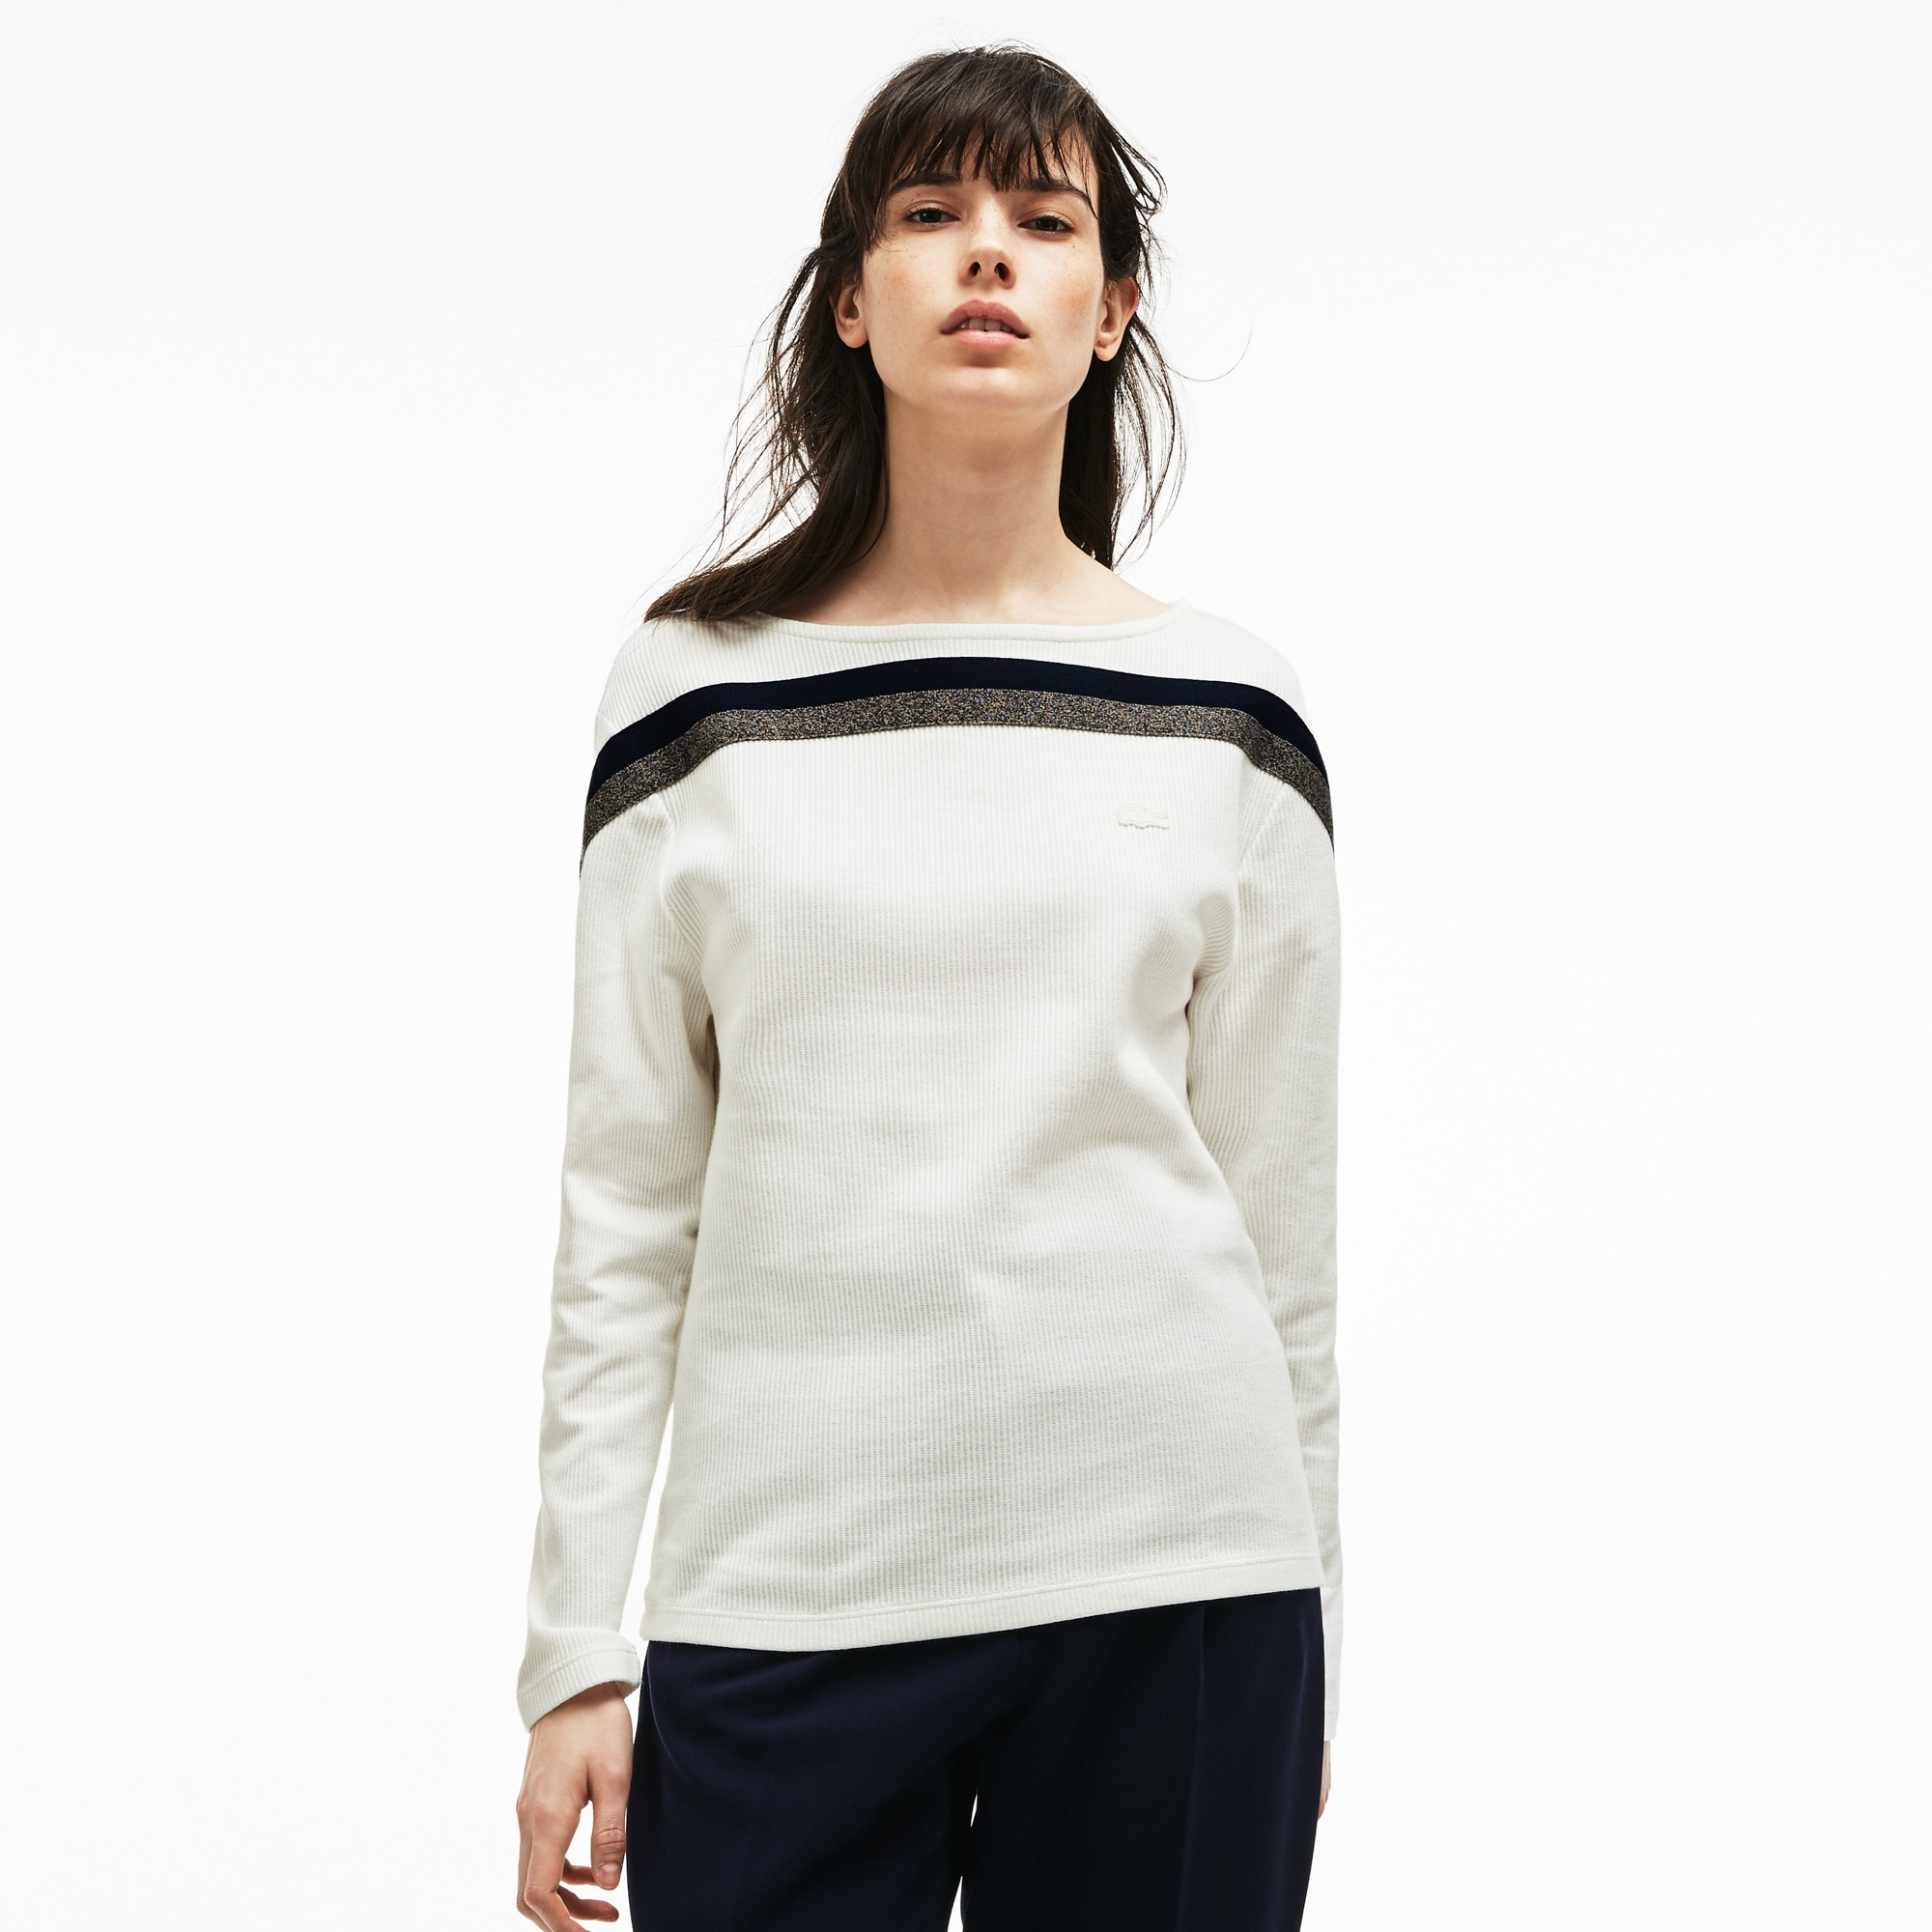 Damen MADE IN FRANCE Baumwoll-Sweatshirt mit U-Boot-Ausschnitt